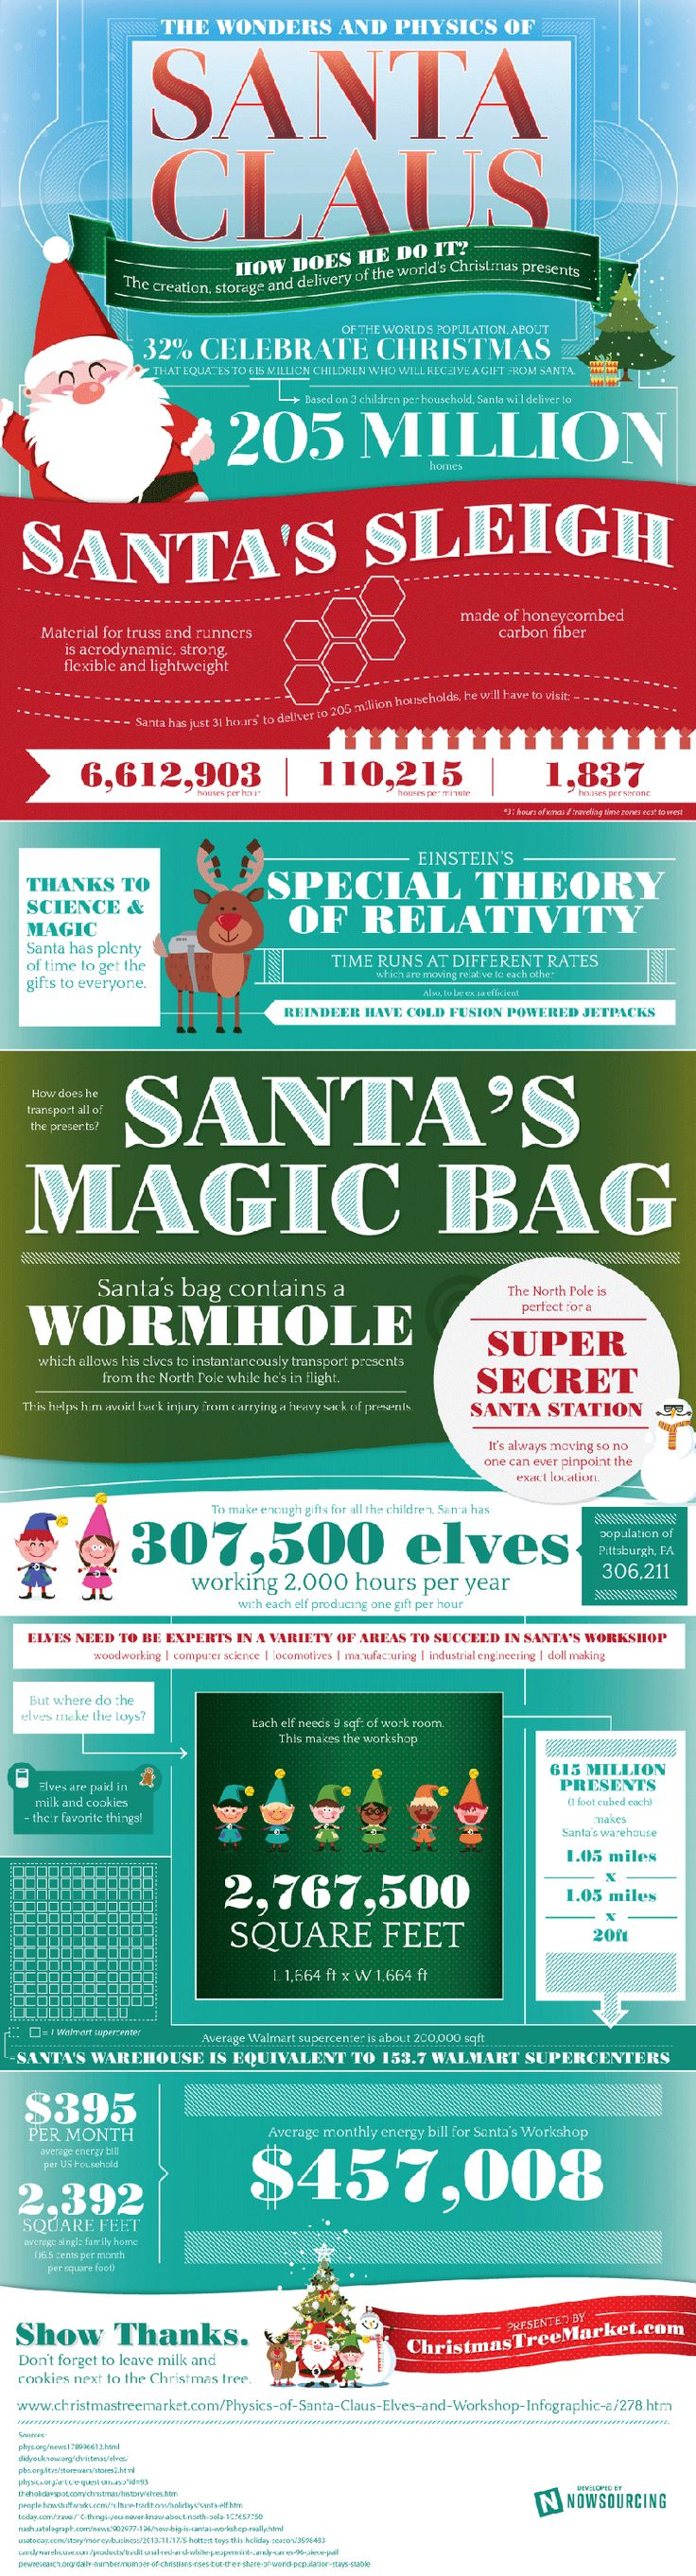 How does Santa create and deliver gifts to all the children in the world? While Christmas is definitely a magical time, there is also some science involved - and Christmas Tree Market has put it into an infographic to help explain the Wonders and Physics of Santa Claus!